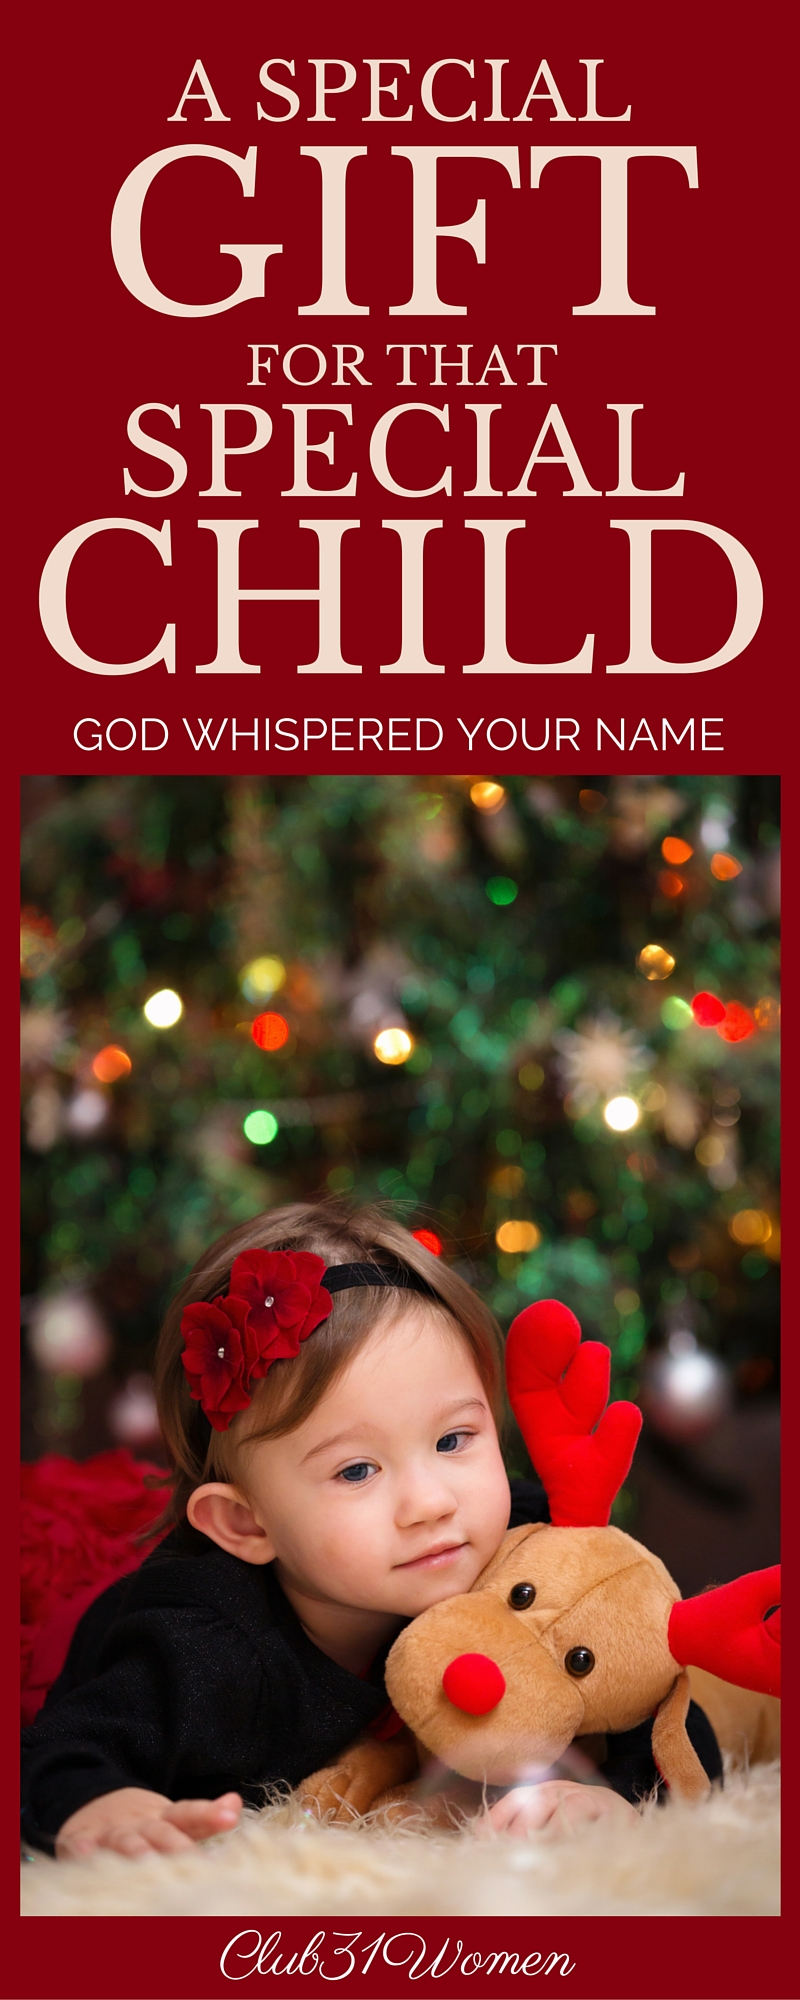 A Special Gift For That Special Child {God Whispered Your Name}